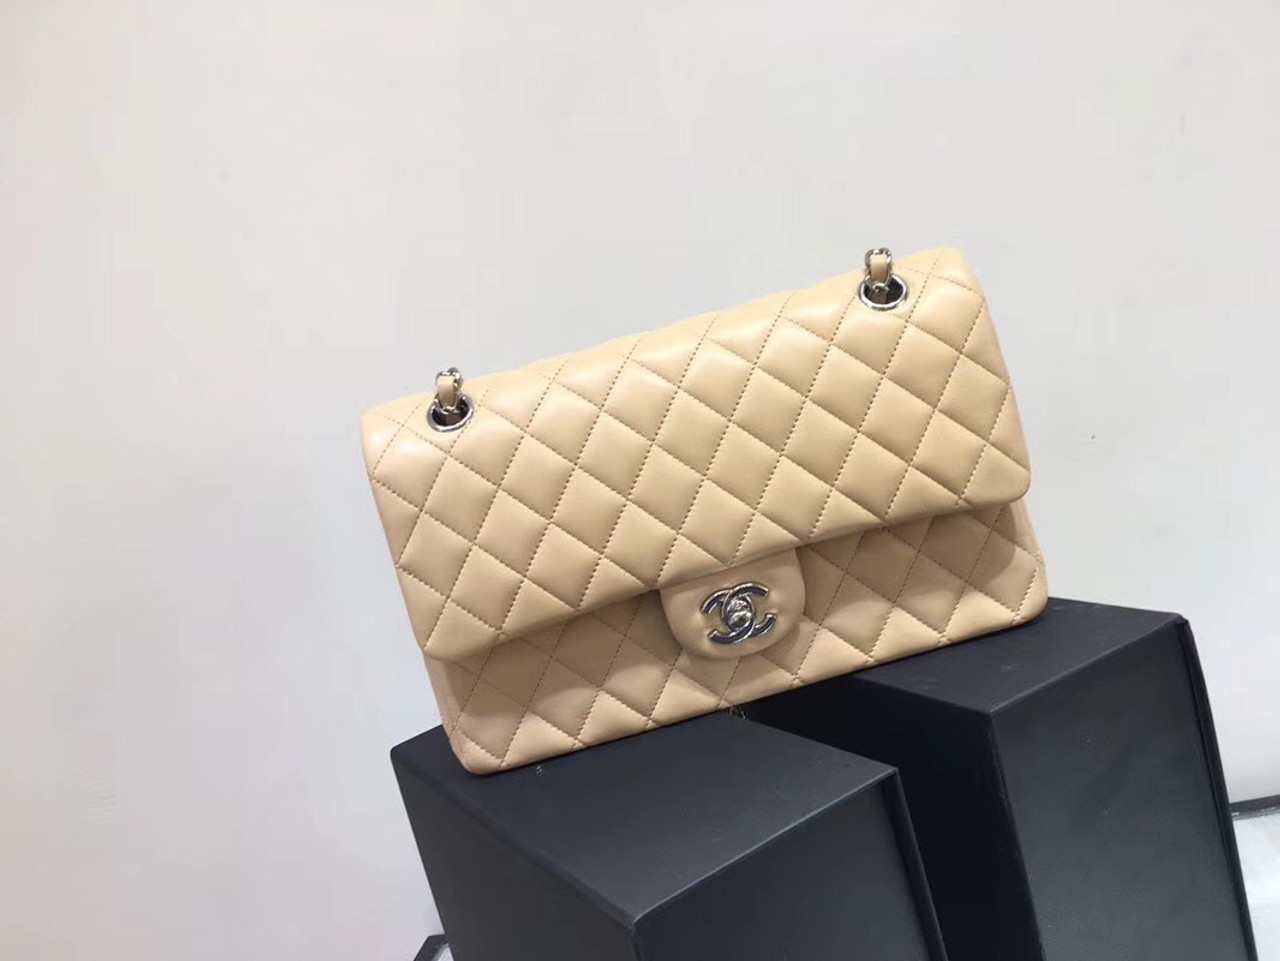 61b7b36498eef0 Chanel Classic Flap 25cm Bag Silver Hardware Lambskin Leather Spring/Summer  2018 Collection, Beige